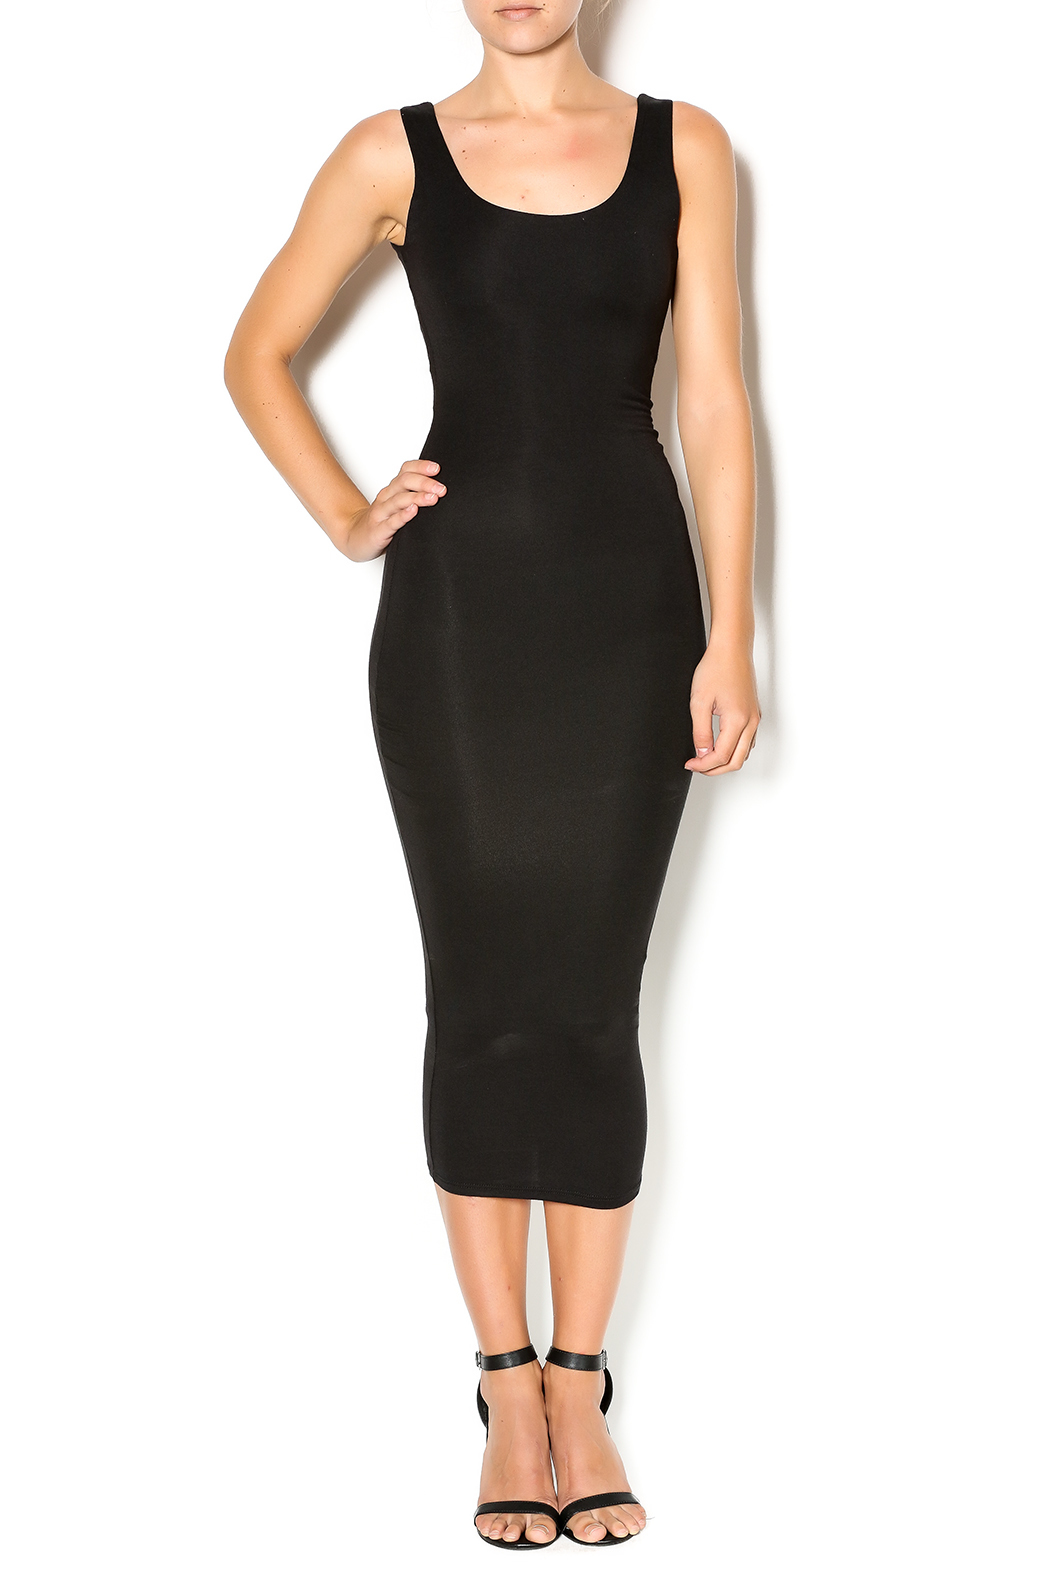 Black Bead Fitted Dress from Manhattan by Dor L'Dor ...